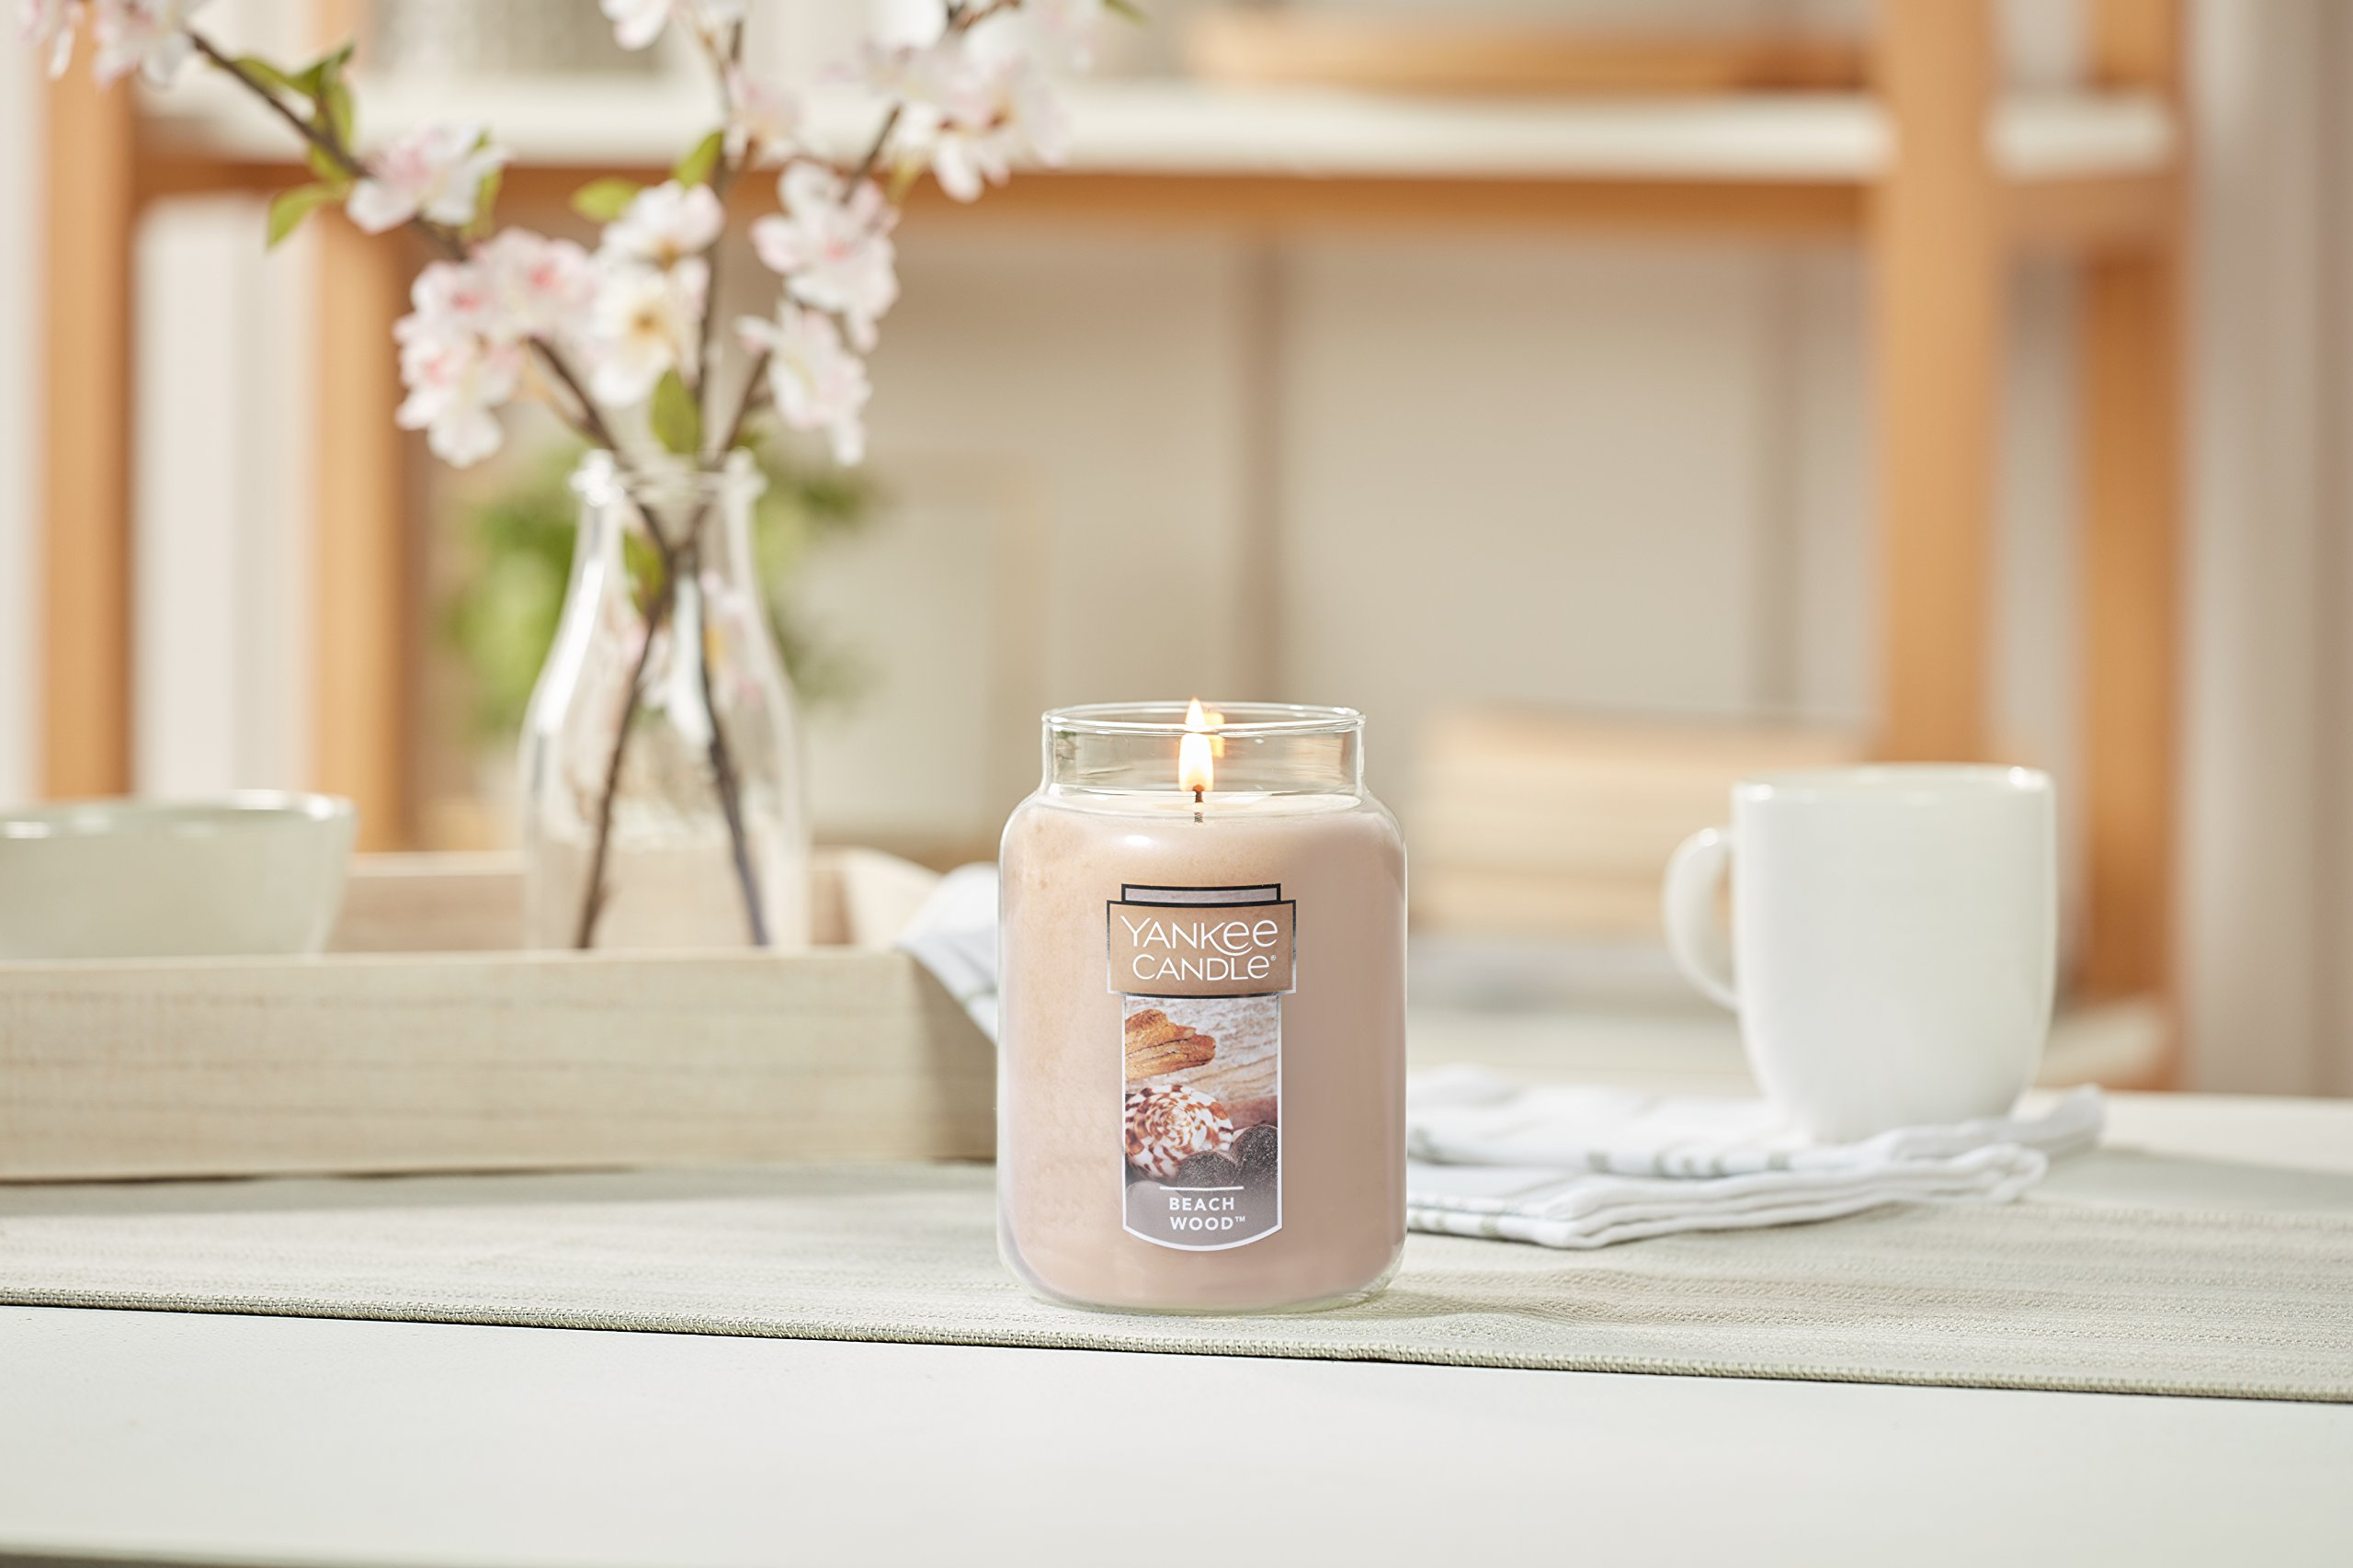 Yankee Candle Large Jar Candle, Beach Wood by Yankee Candle (Image #5)